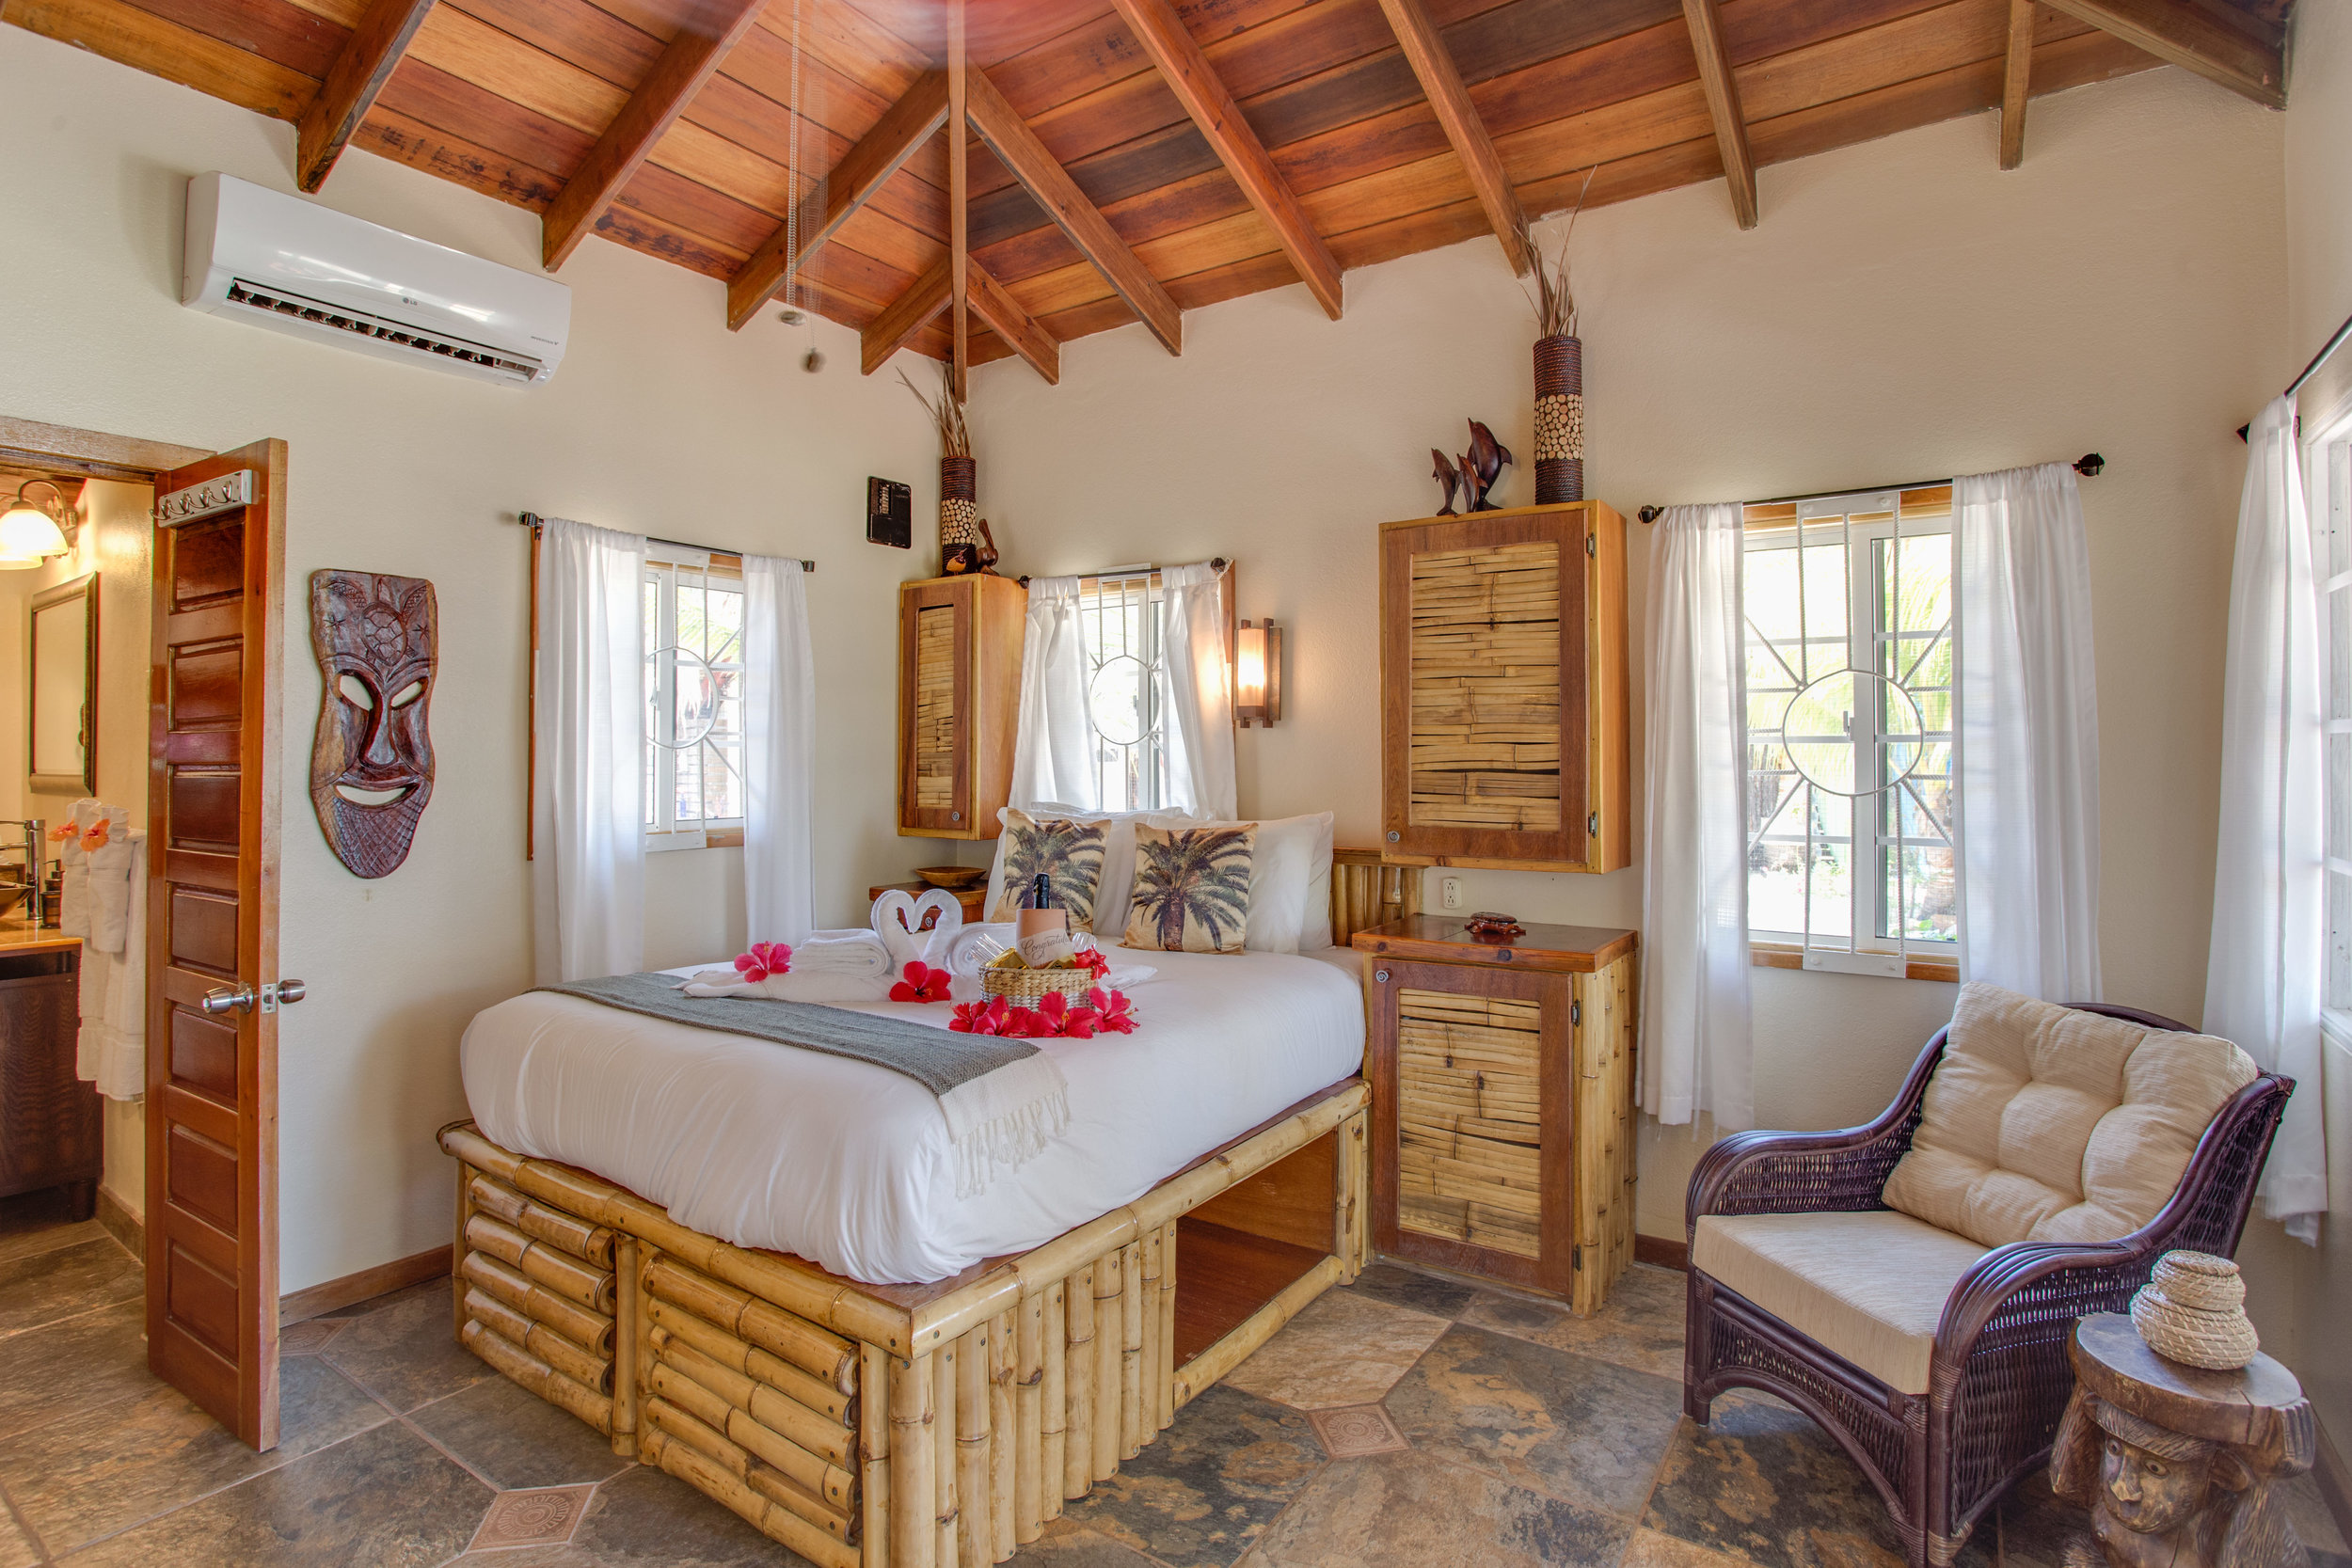 These traditional Belizean cabanas have luxury bedding, Belizean wood ceiling, bamboo accents, with exotic furniture and local art